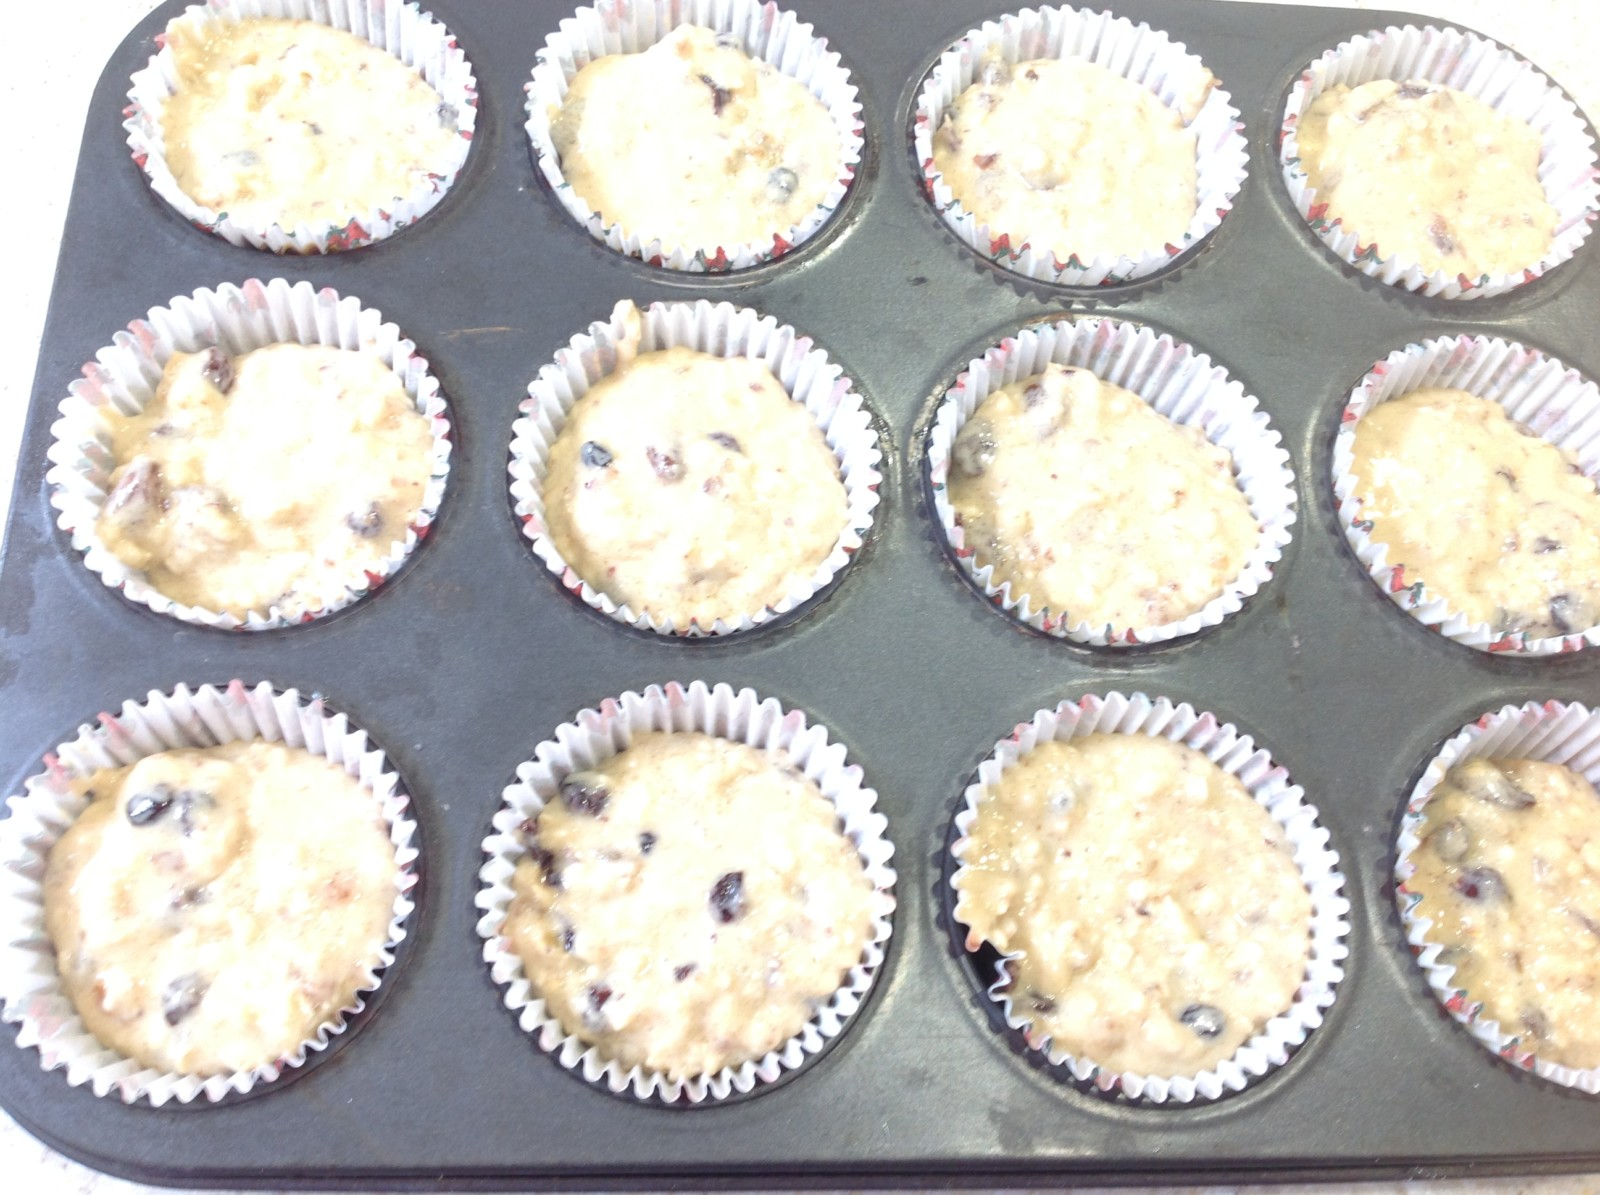 muffins, uncooked